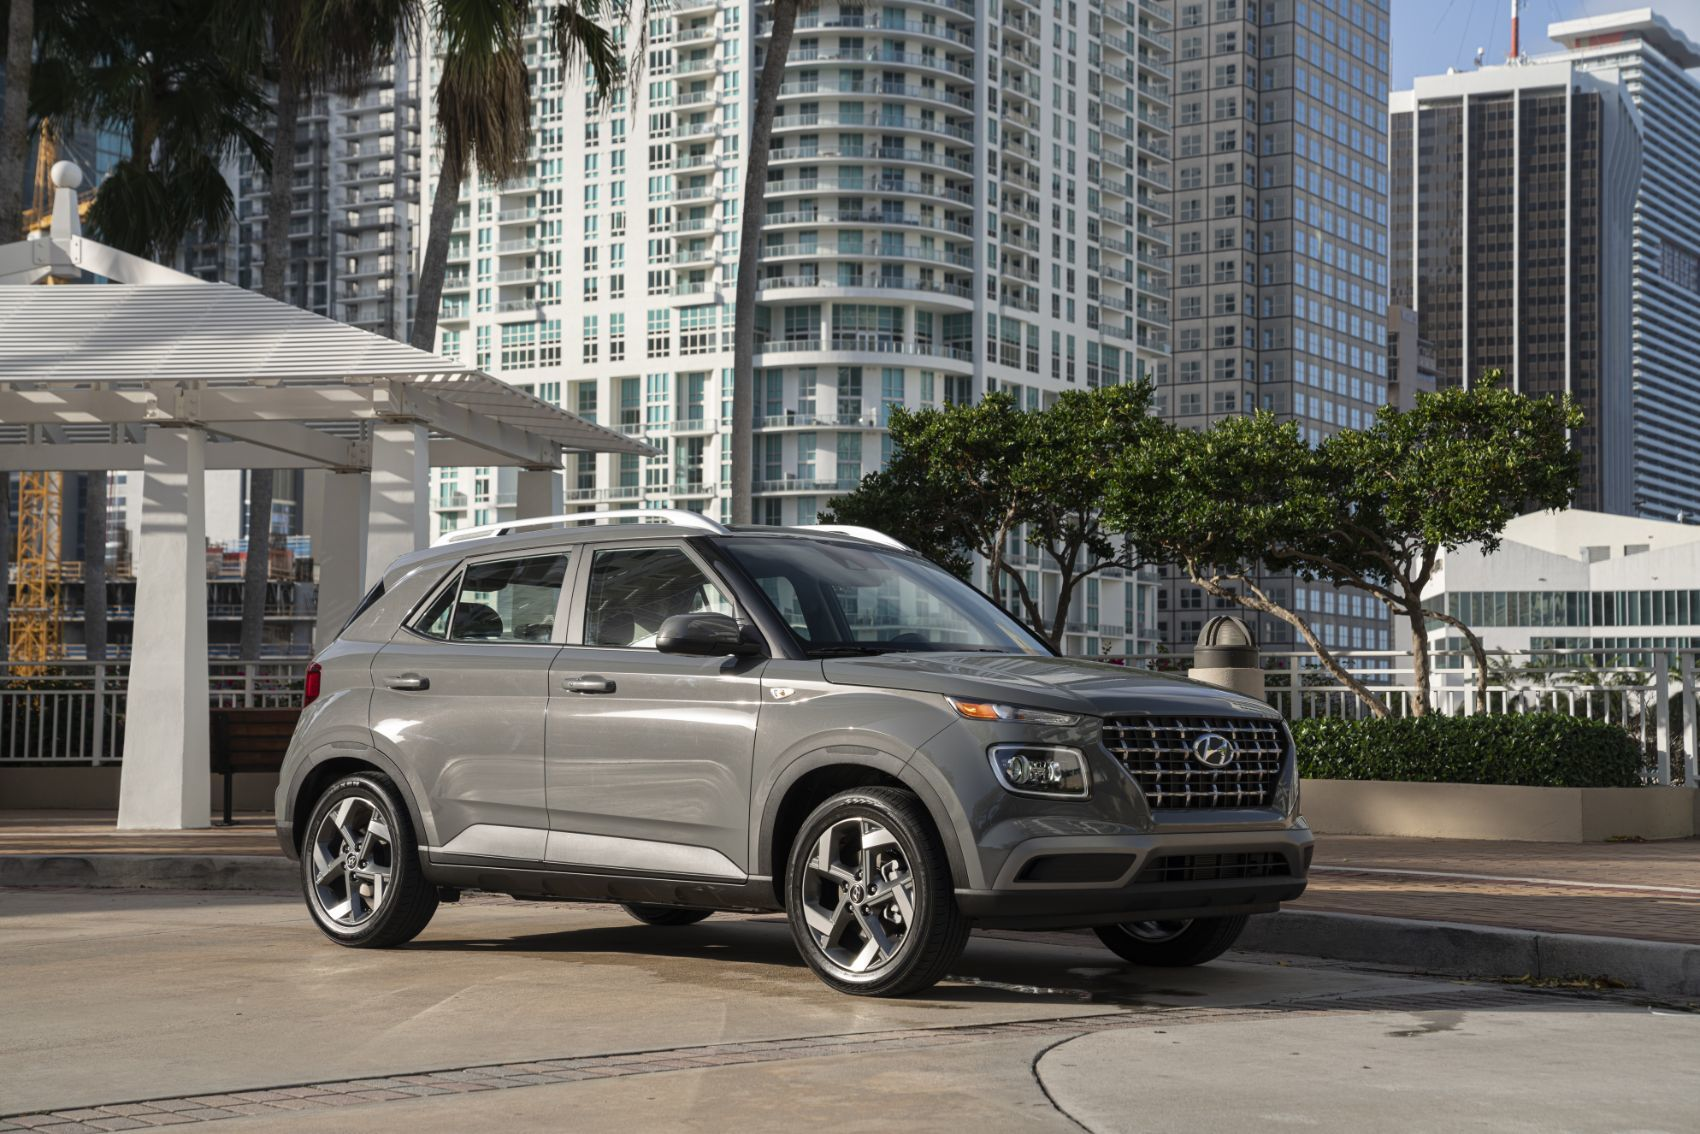 2020 Hyundai Venue Review: How Does This City Slicker Stack Up?